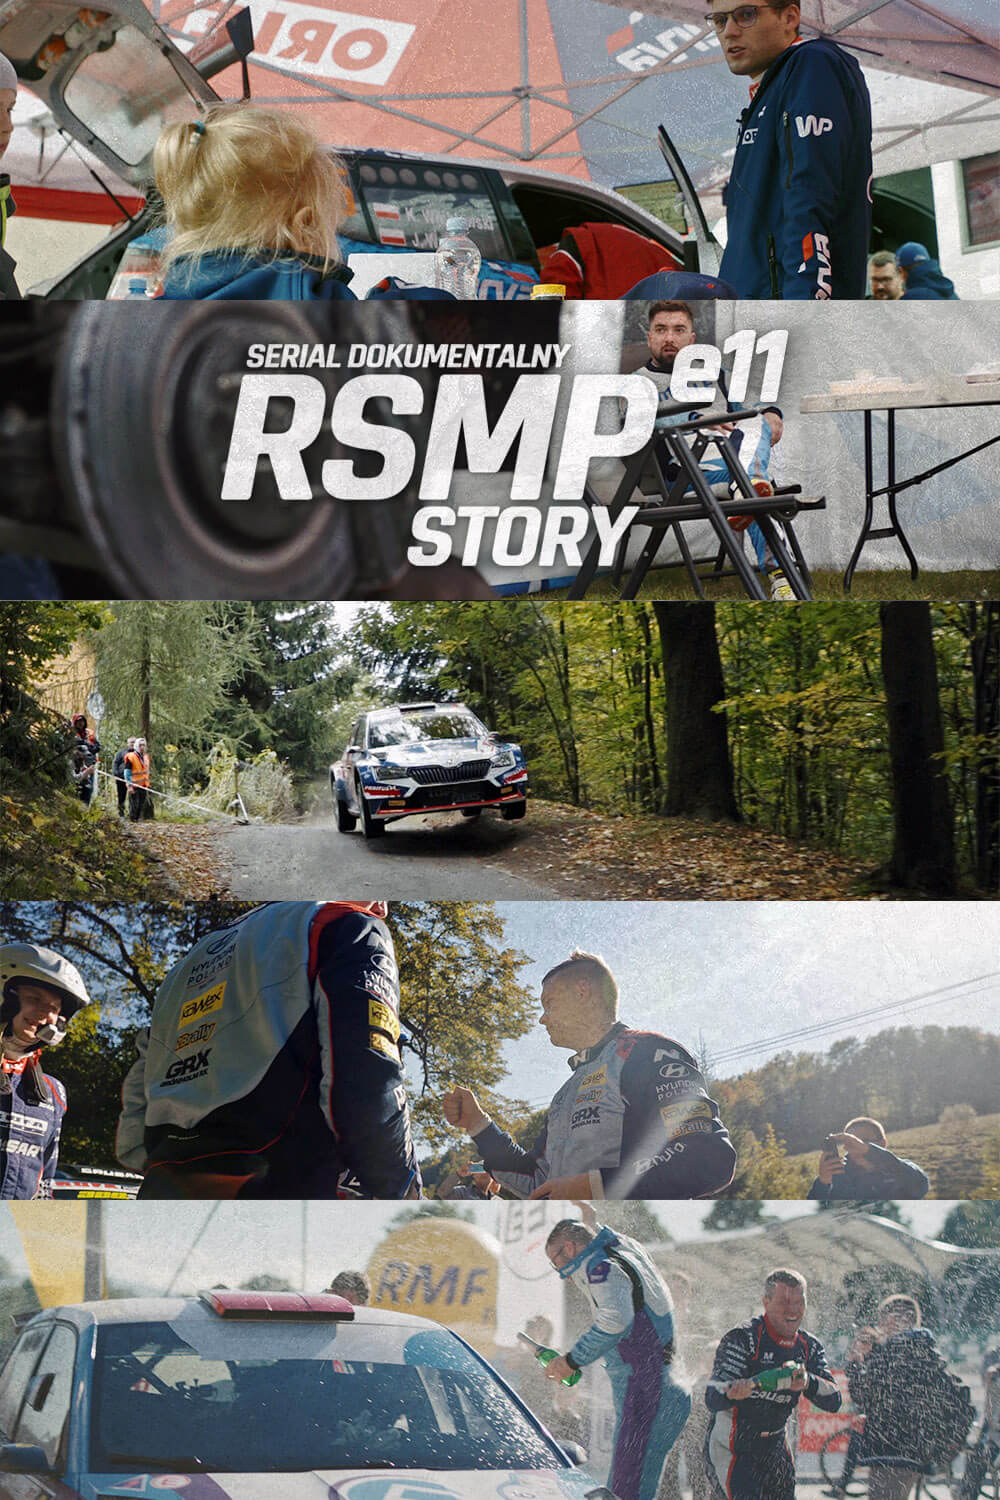 Poster - RSMP STORY s01e11